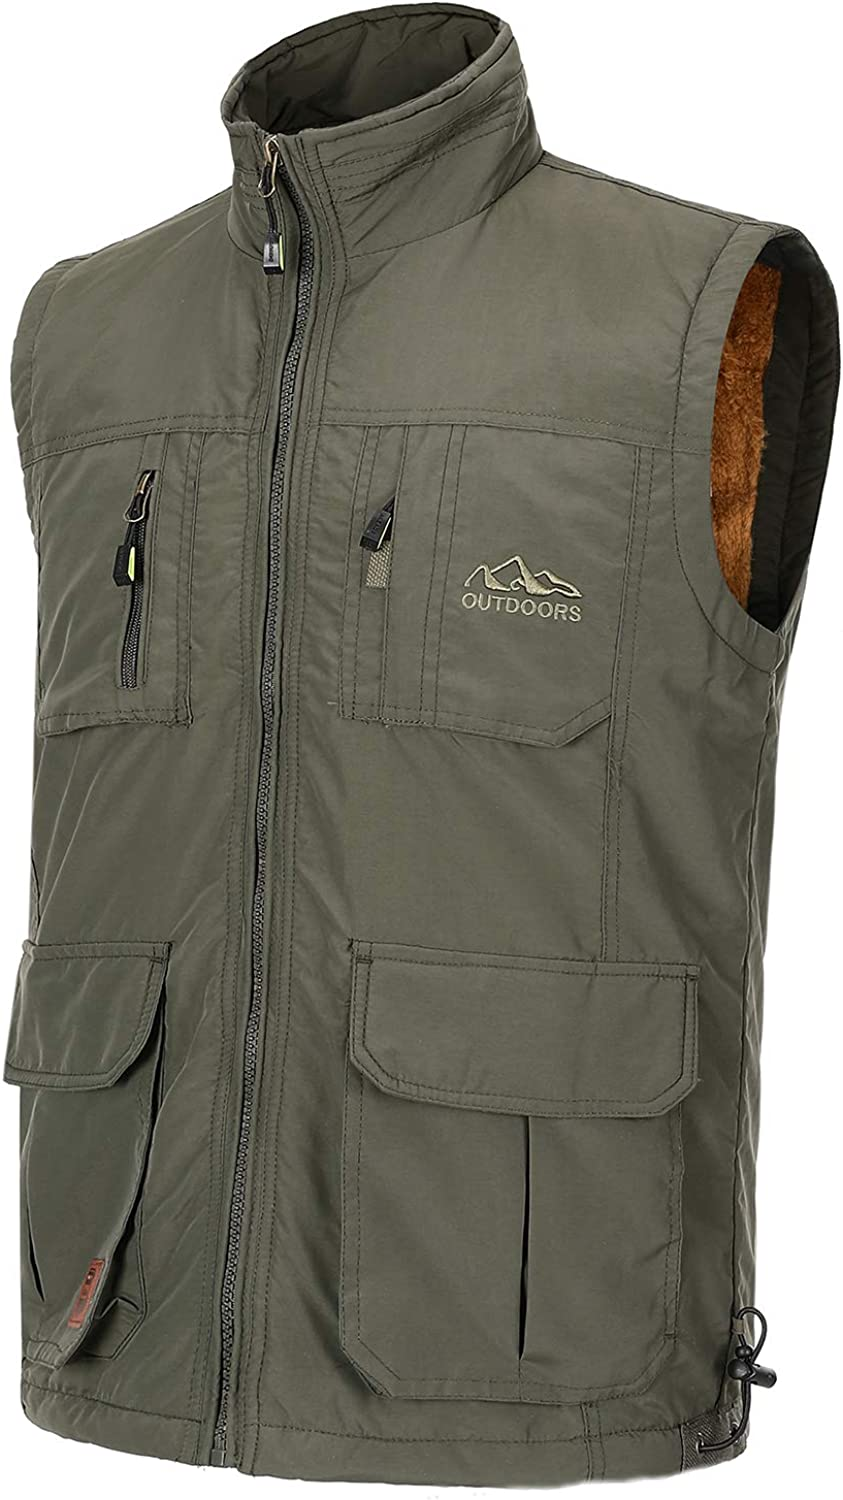 Spanye Men's Outdoor Padded Puffer Vest Fleeve Lined Sleeveless Jacket with Pockets for Work Fishing Photo